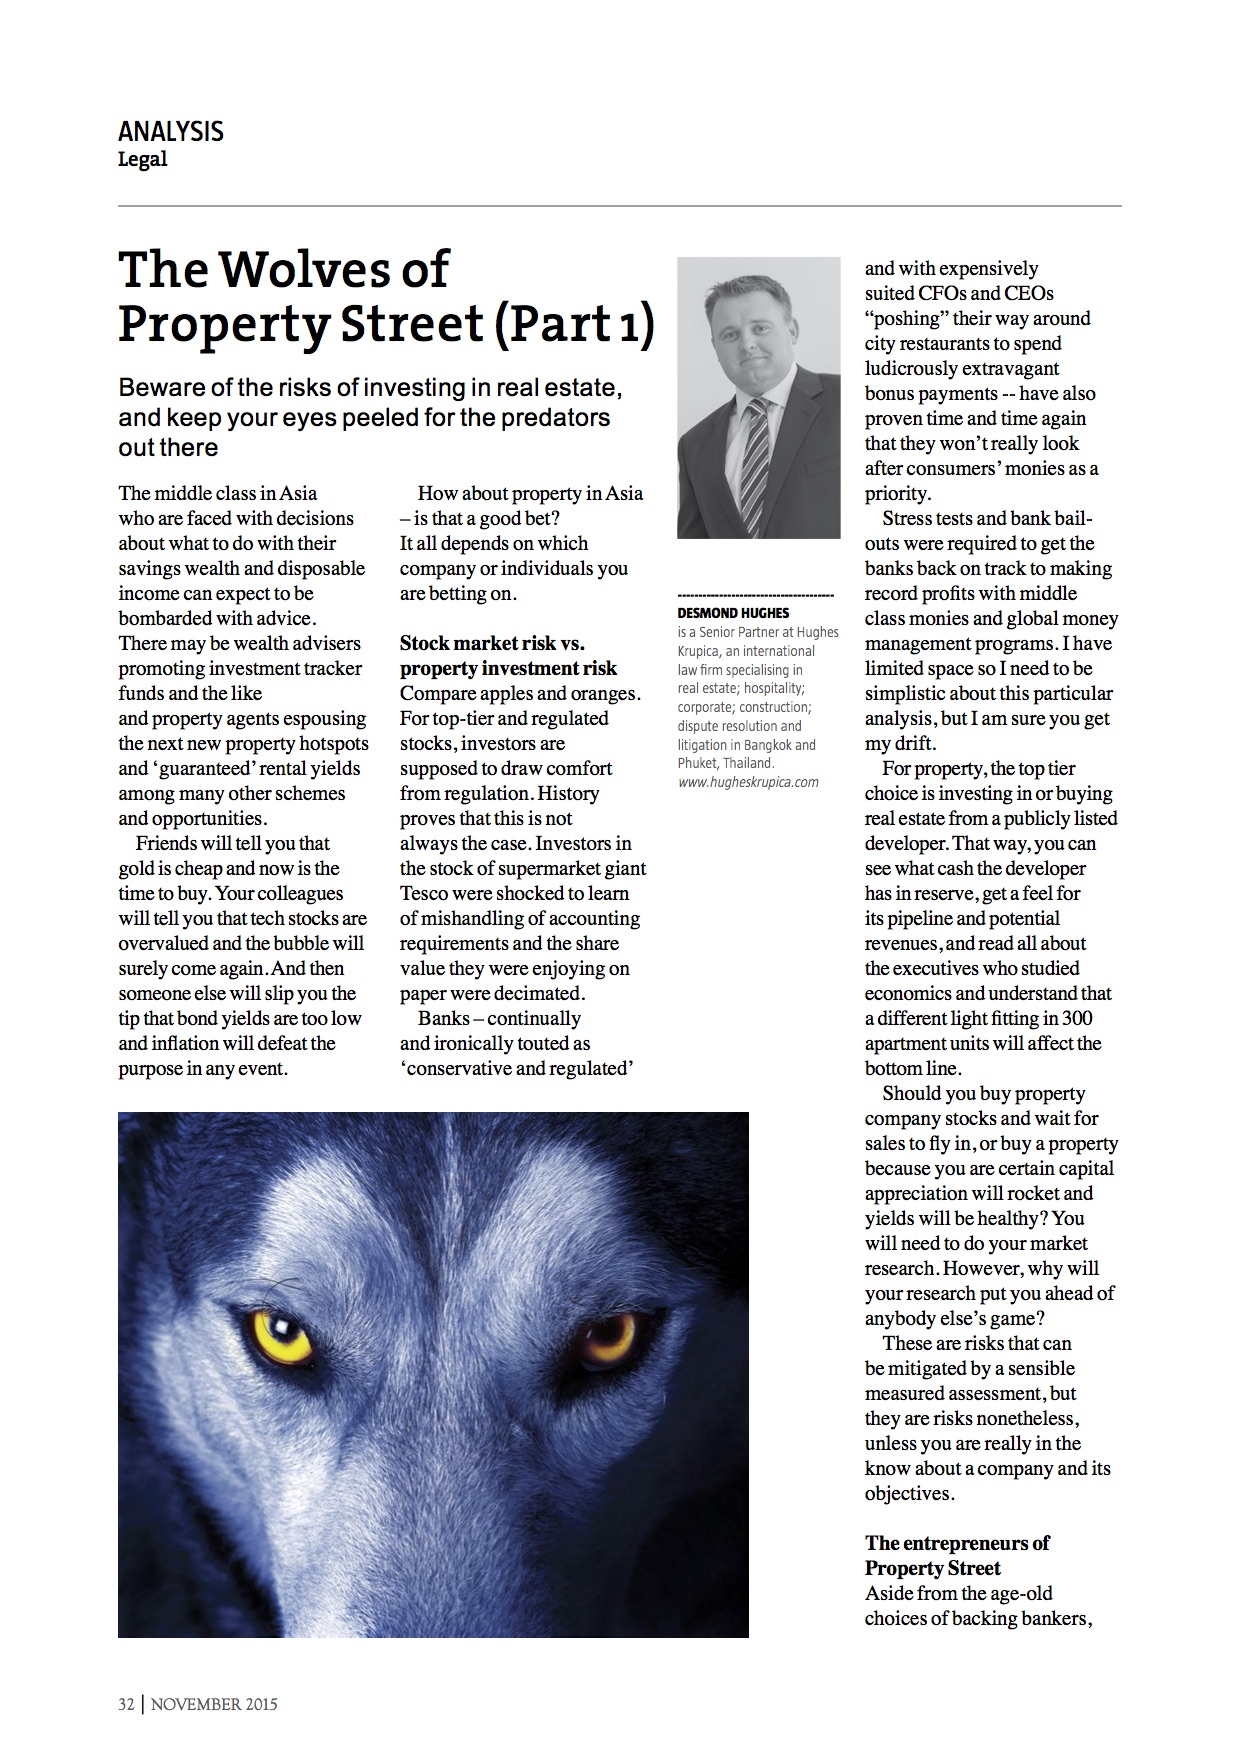 The Wolves of Property Street (Part One of Two)